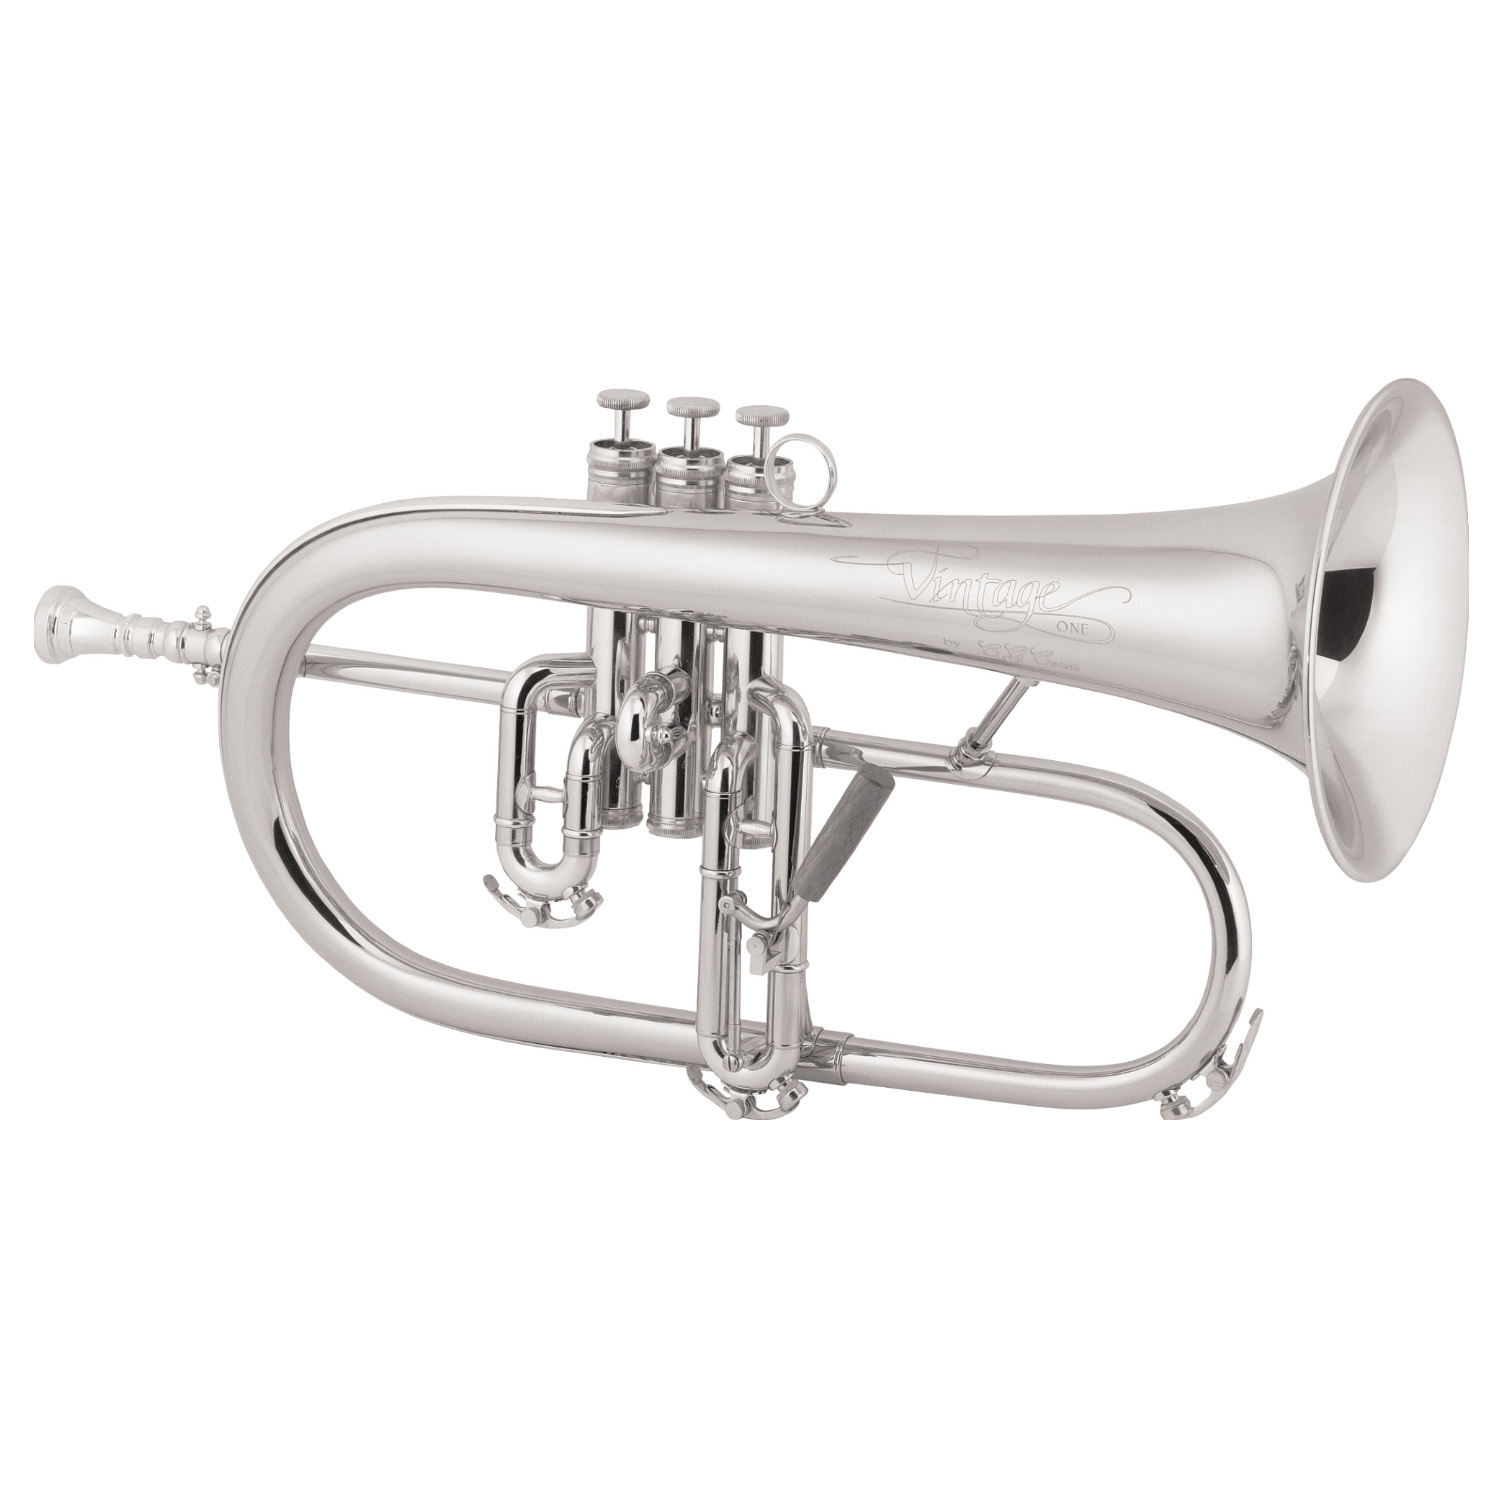 Conn Vintage One Flugelhorn [Bright Silver Finish]